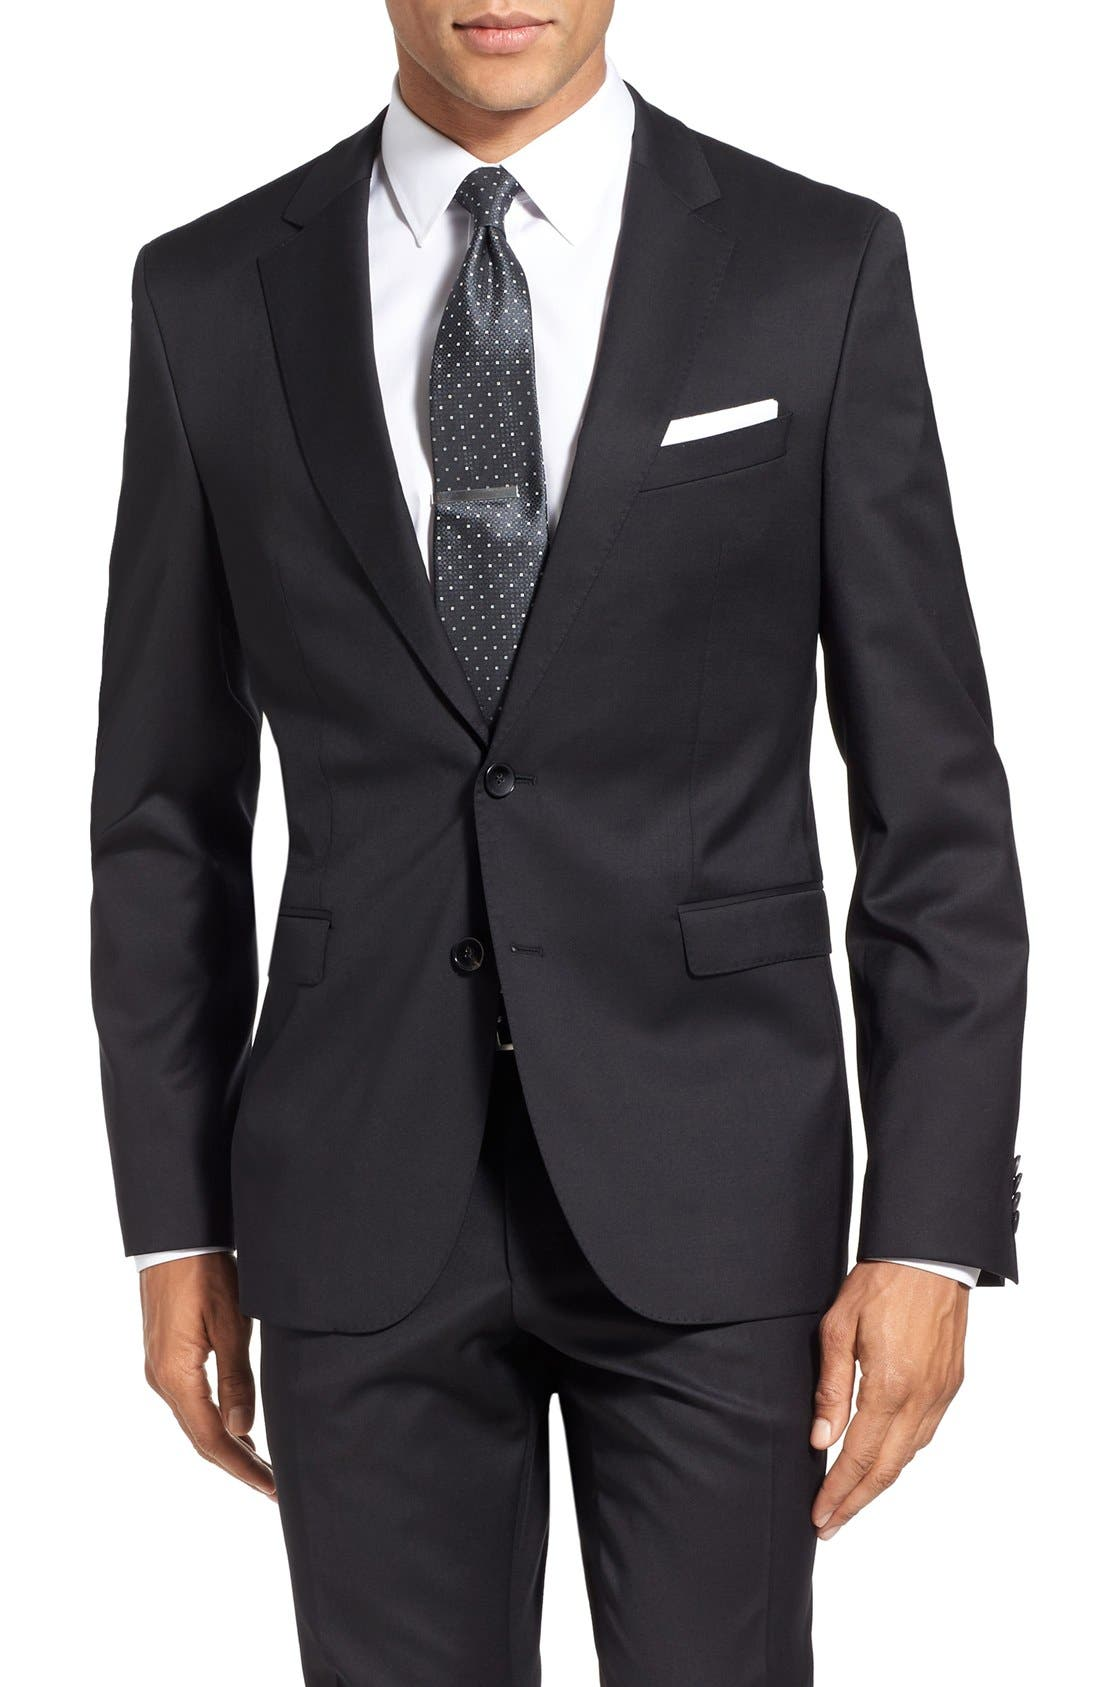 Ryan/Win Extra Trim Fit Solid Wool Suit,                             Alternate thumbnail 13, color,                             BLACK